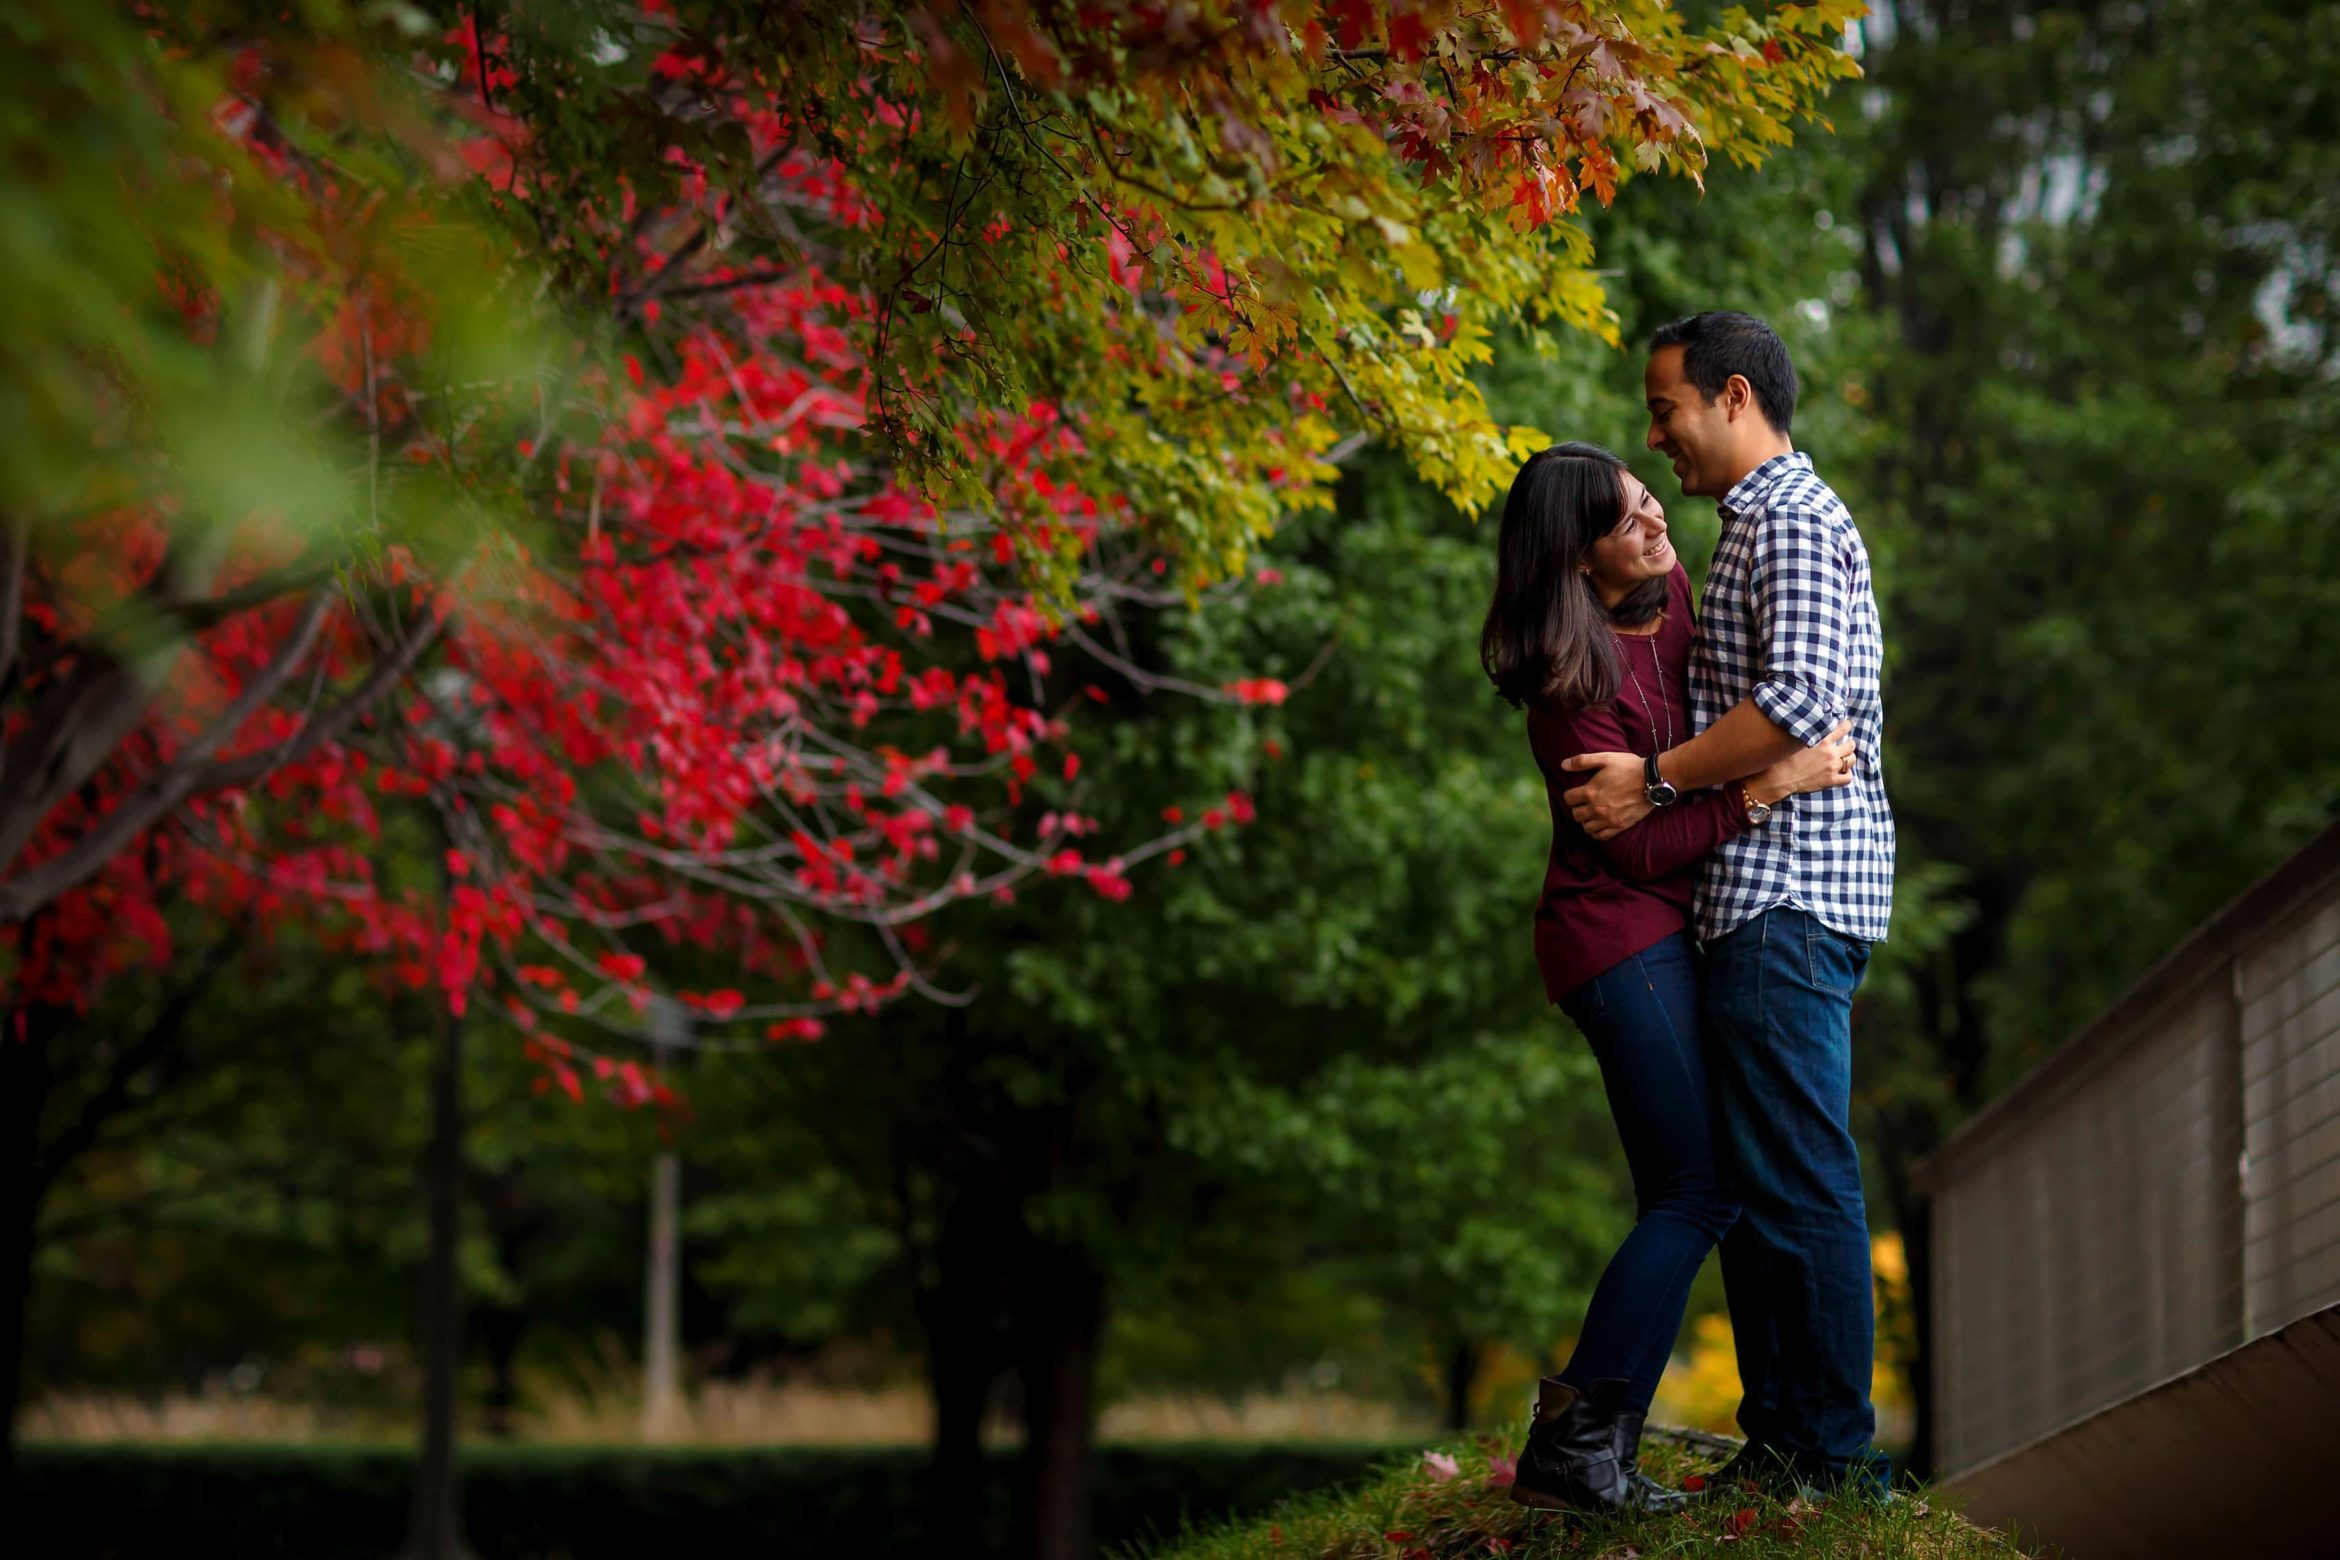 when-to-take-engagement-photos-01